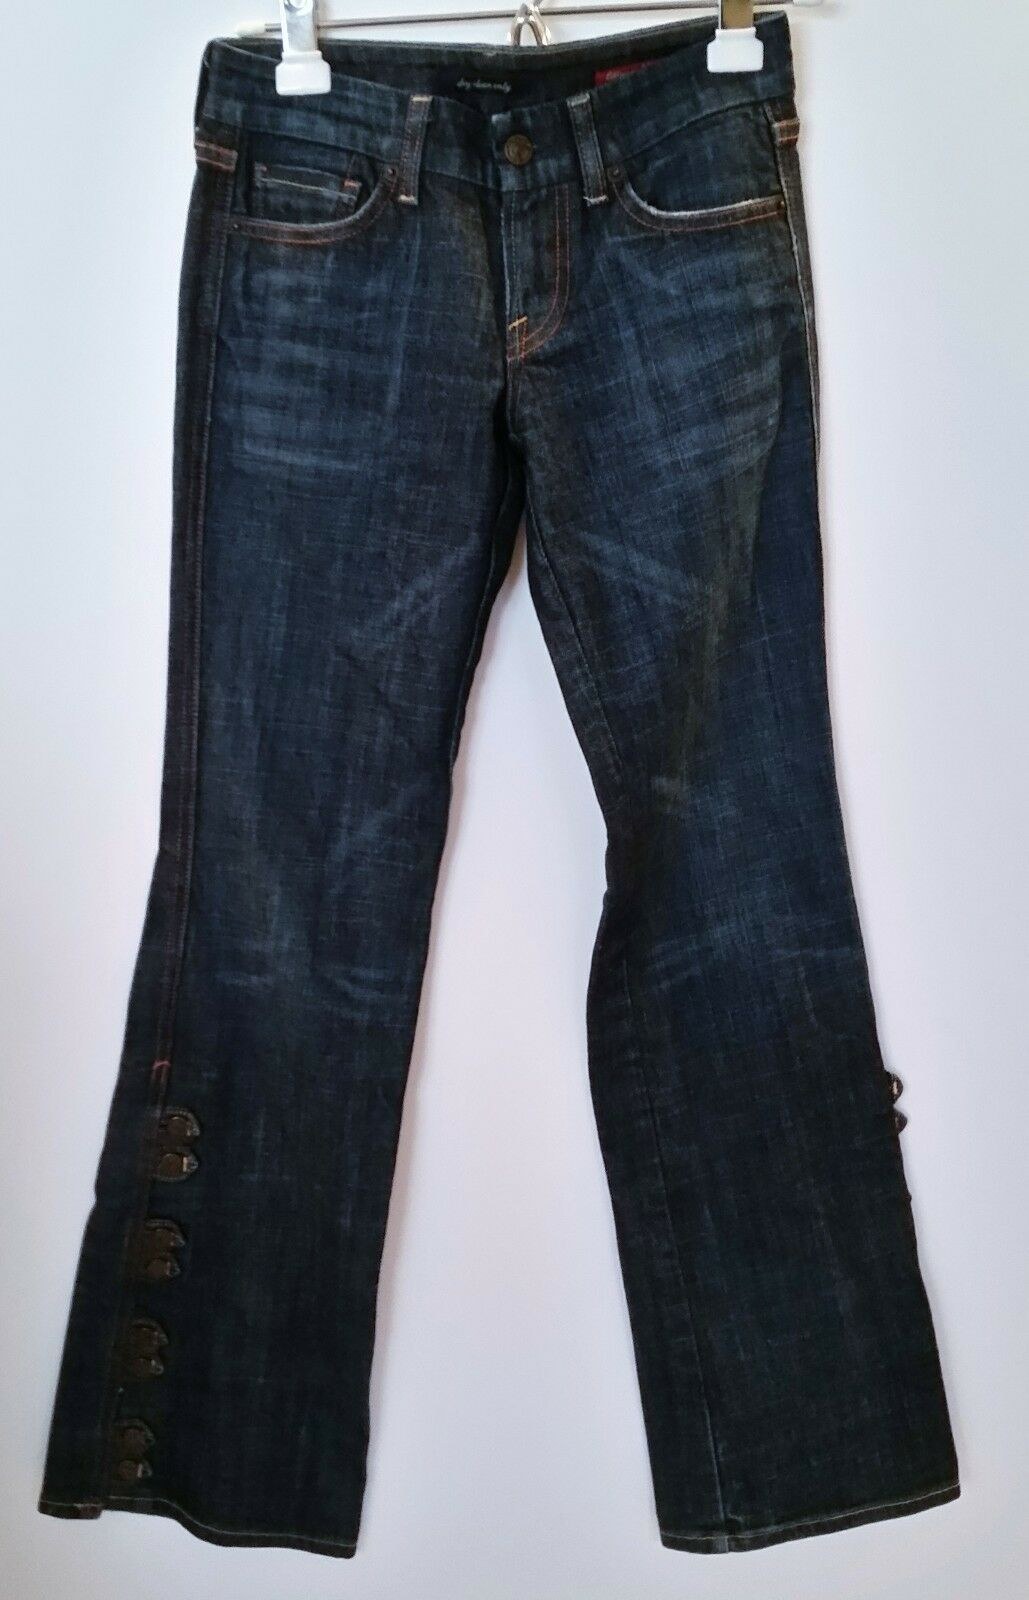 Citizens of Humanity Dark bluee Button Flare Jeans - Size 24